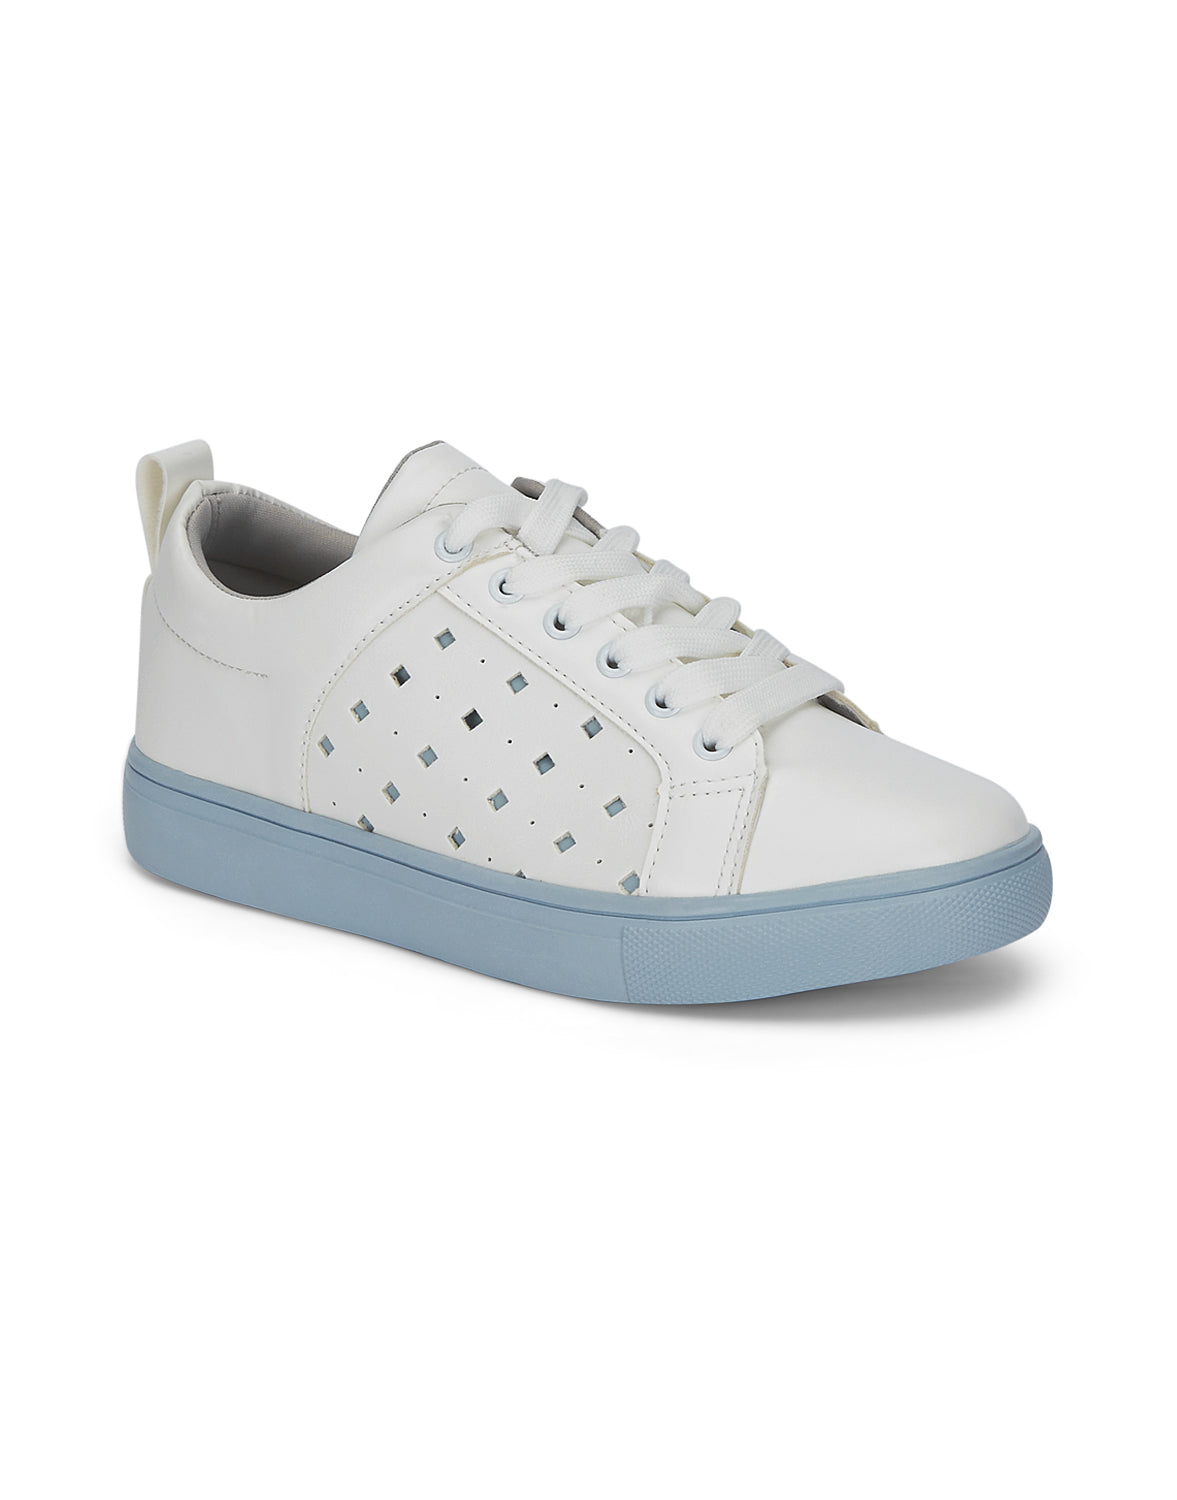 Haven Blaze Blue Sneakers